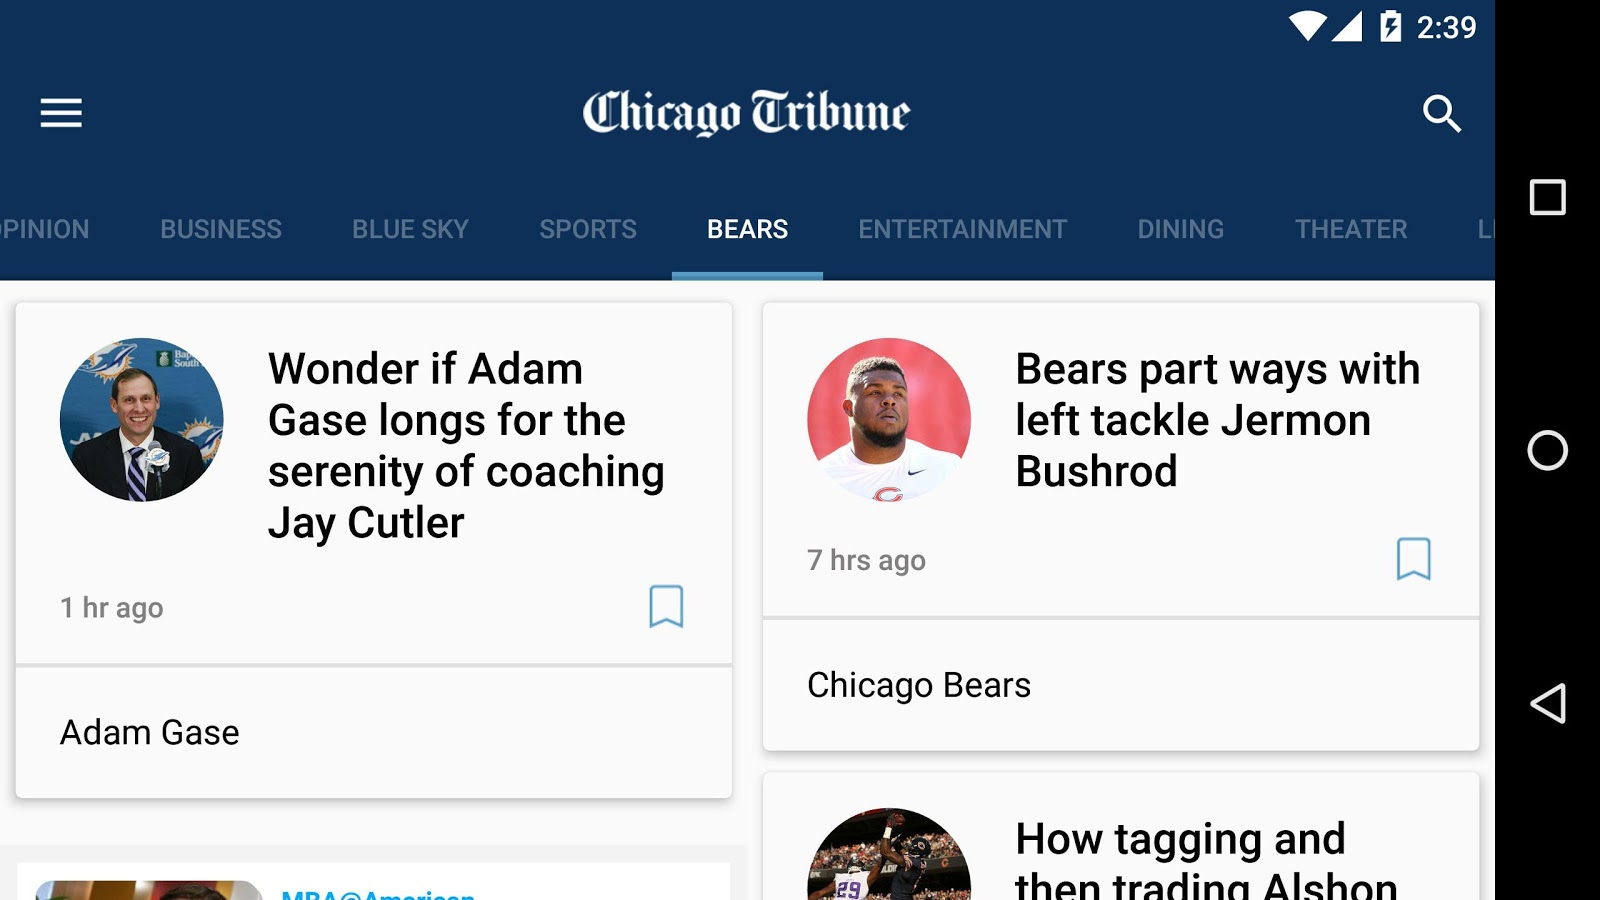 Chicago Tribune Screenshot 5